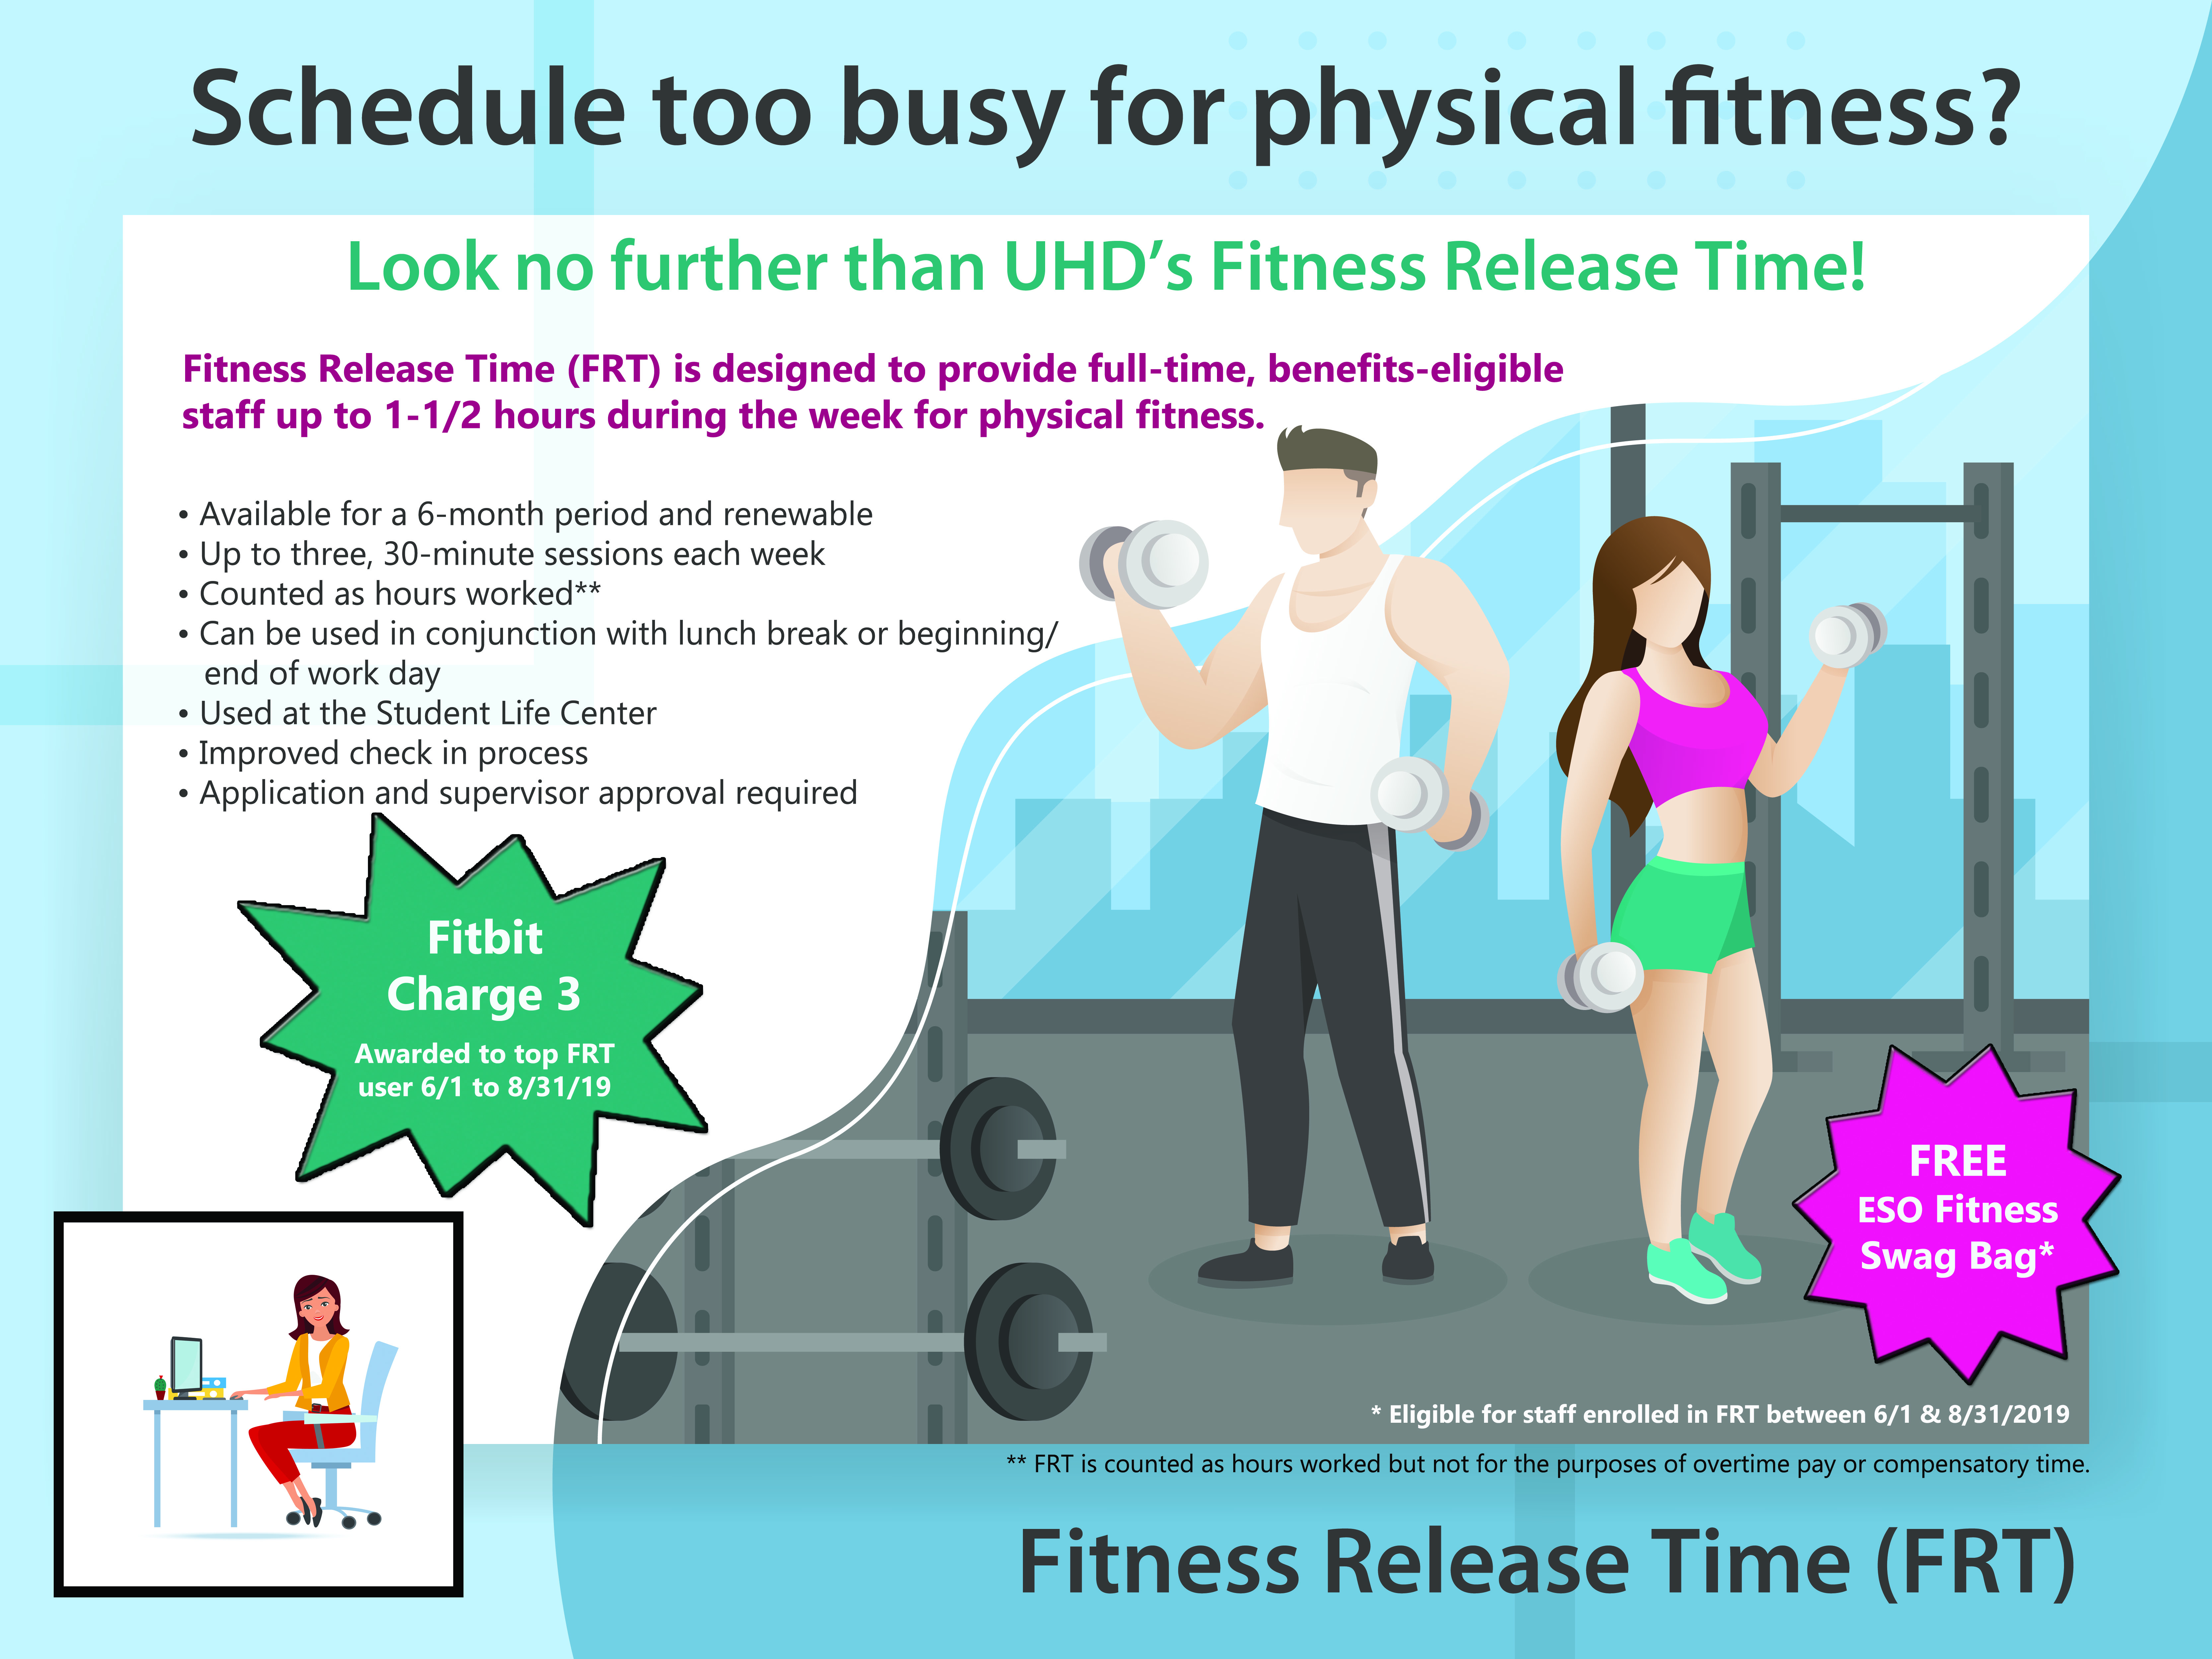 Fitness Release Time: Get fit, earn swag, compete for Fitbit Charge